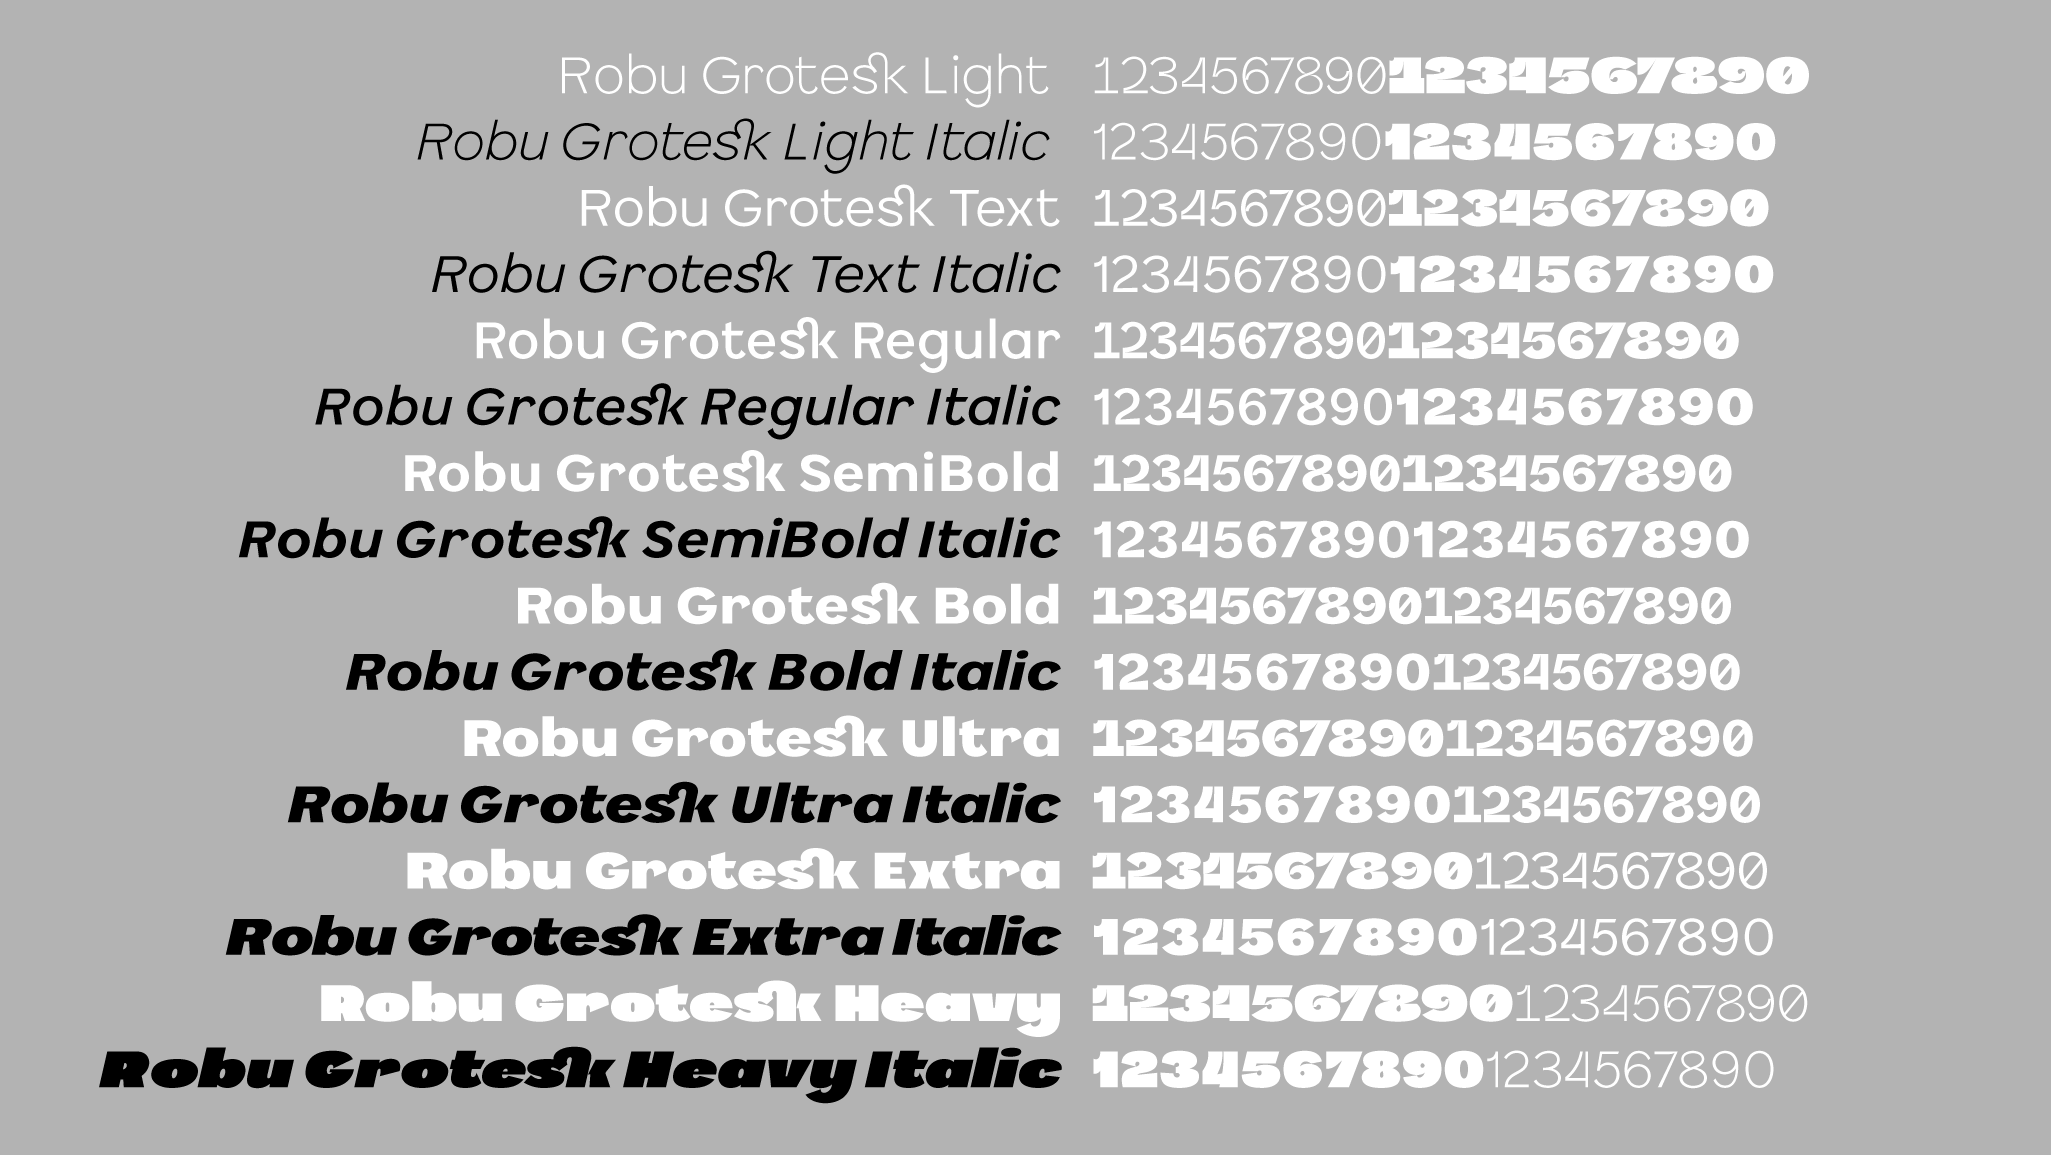 Robu Grotesk, a new typeface designed by Andrei Robu. Available on www.typeverything.com